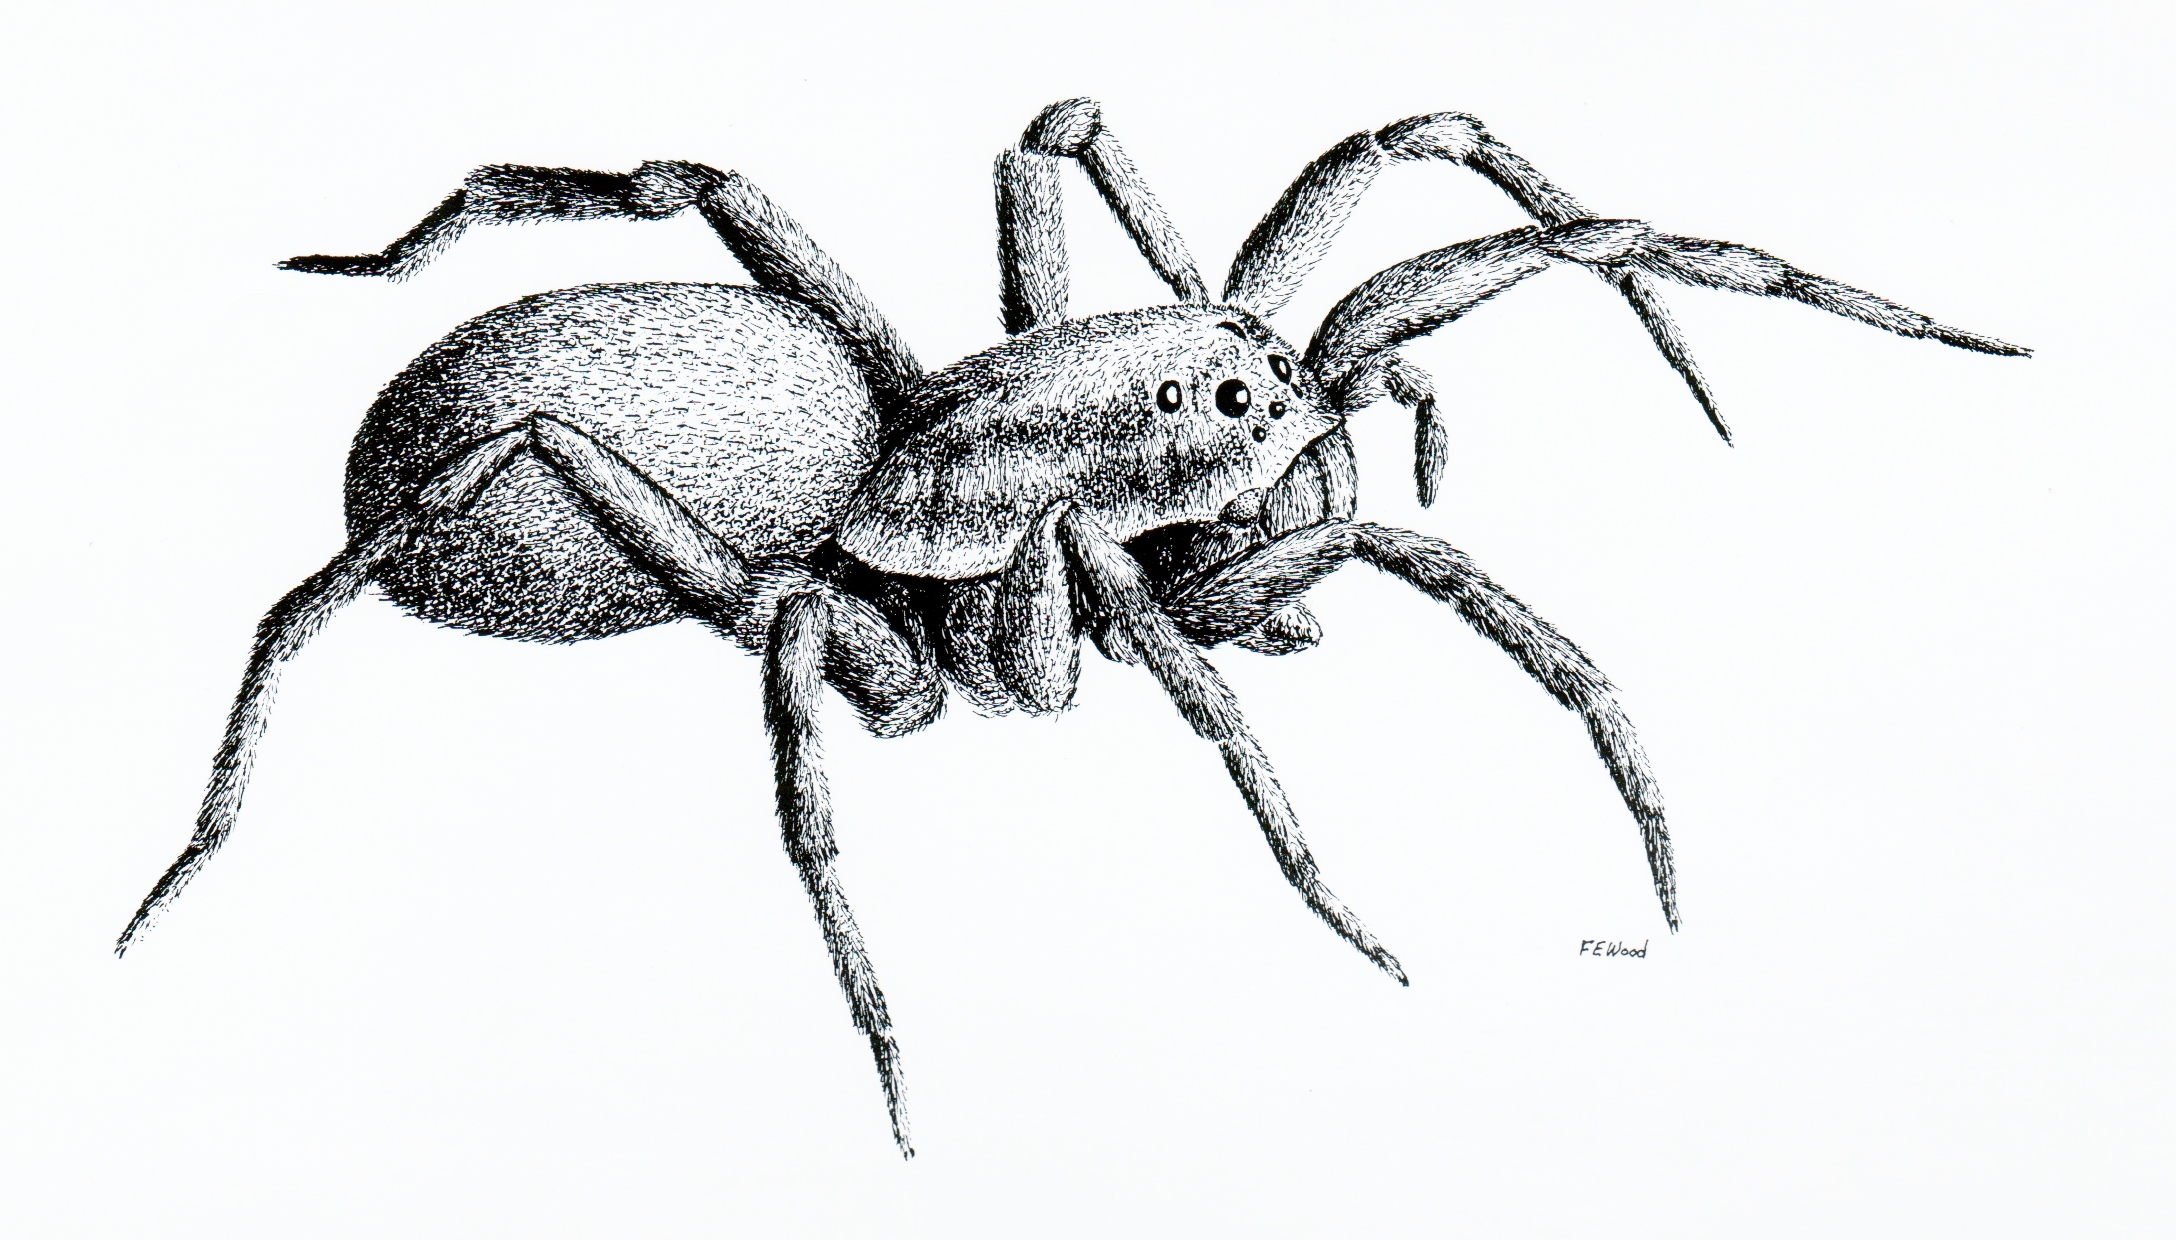 This is a graphic of Current Drawing Of Spiders